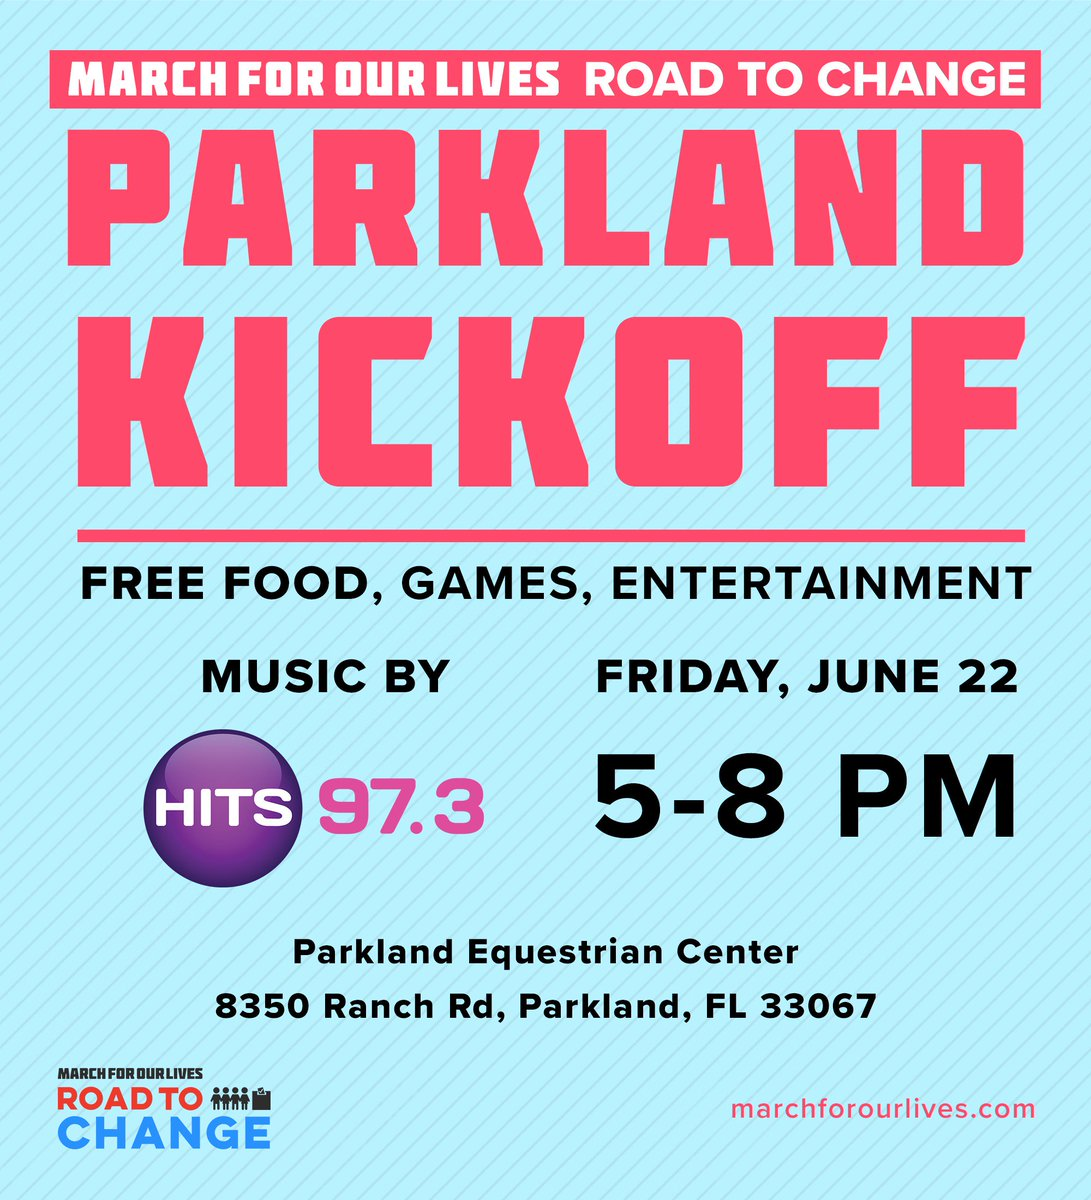 RT @delaneytarr Are you all ready to kick off the Florida Road to Change?? Come over to the Parkland Equestrian Center this Friday to hang out with us!! There'll be dessert trucks and voter registration, so how could you refuse?? #RoadtoChange